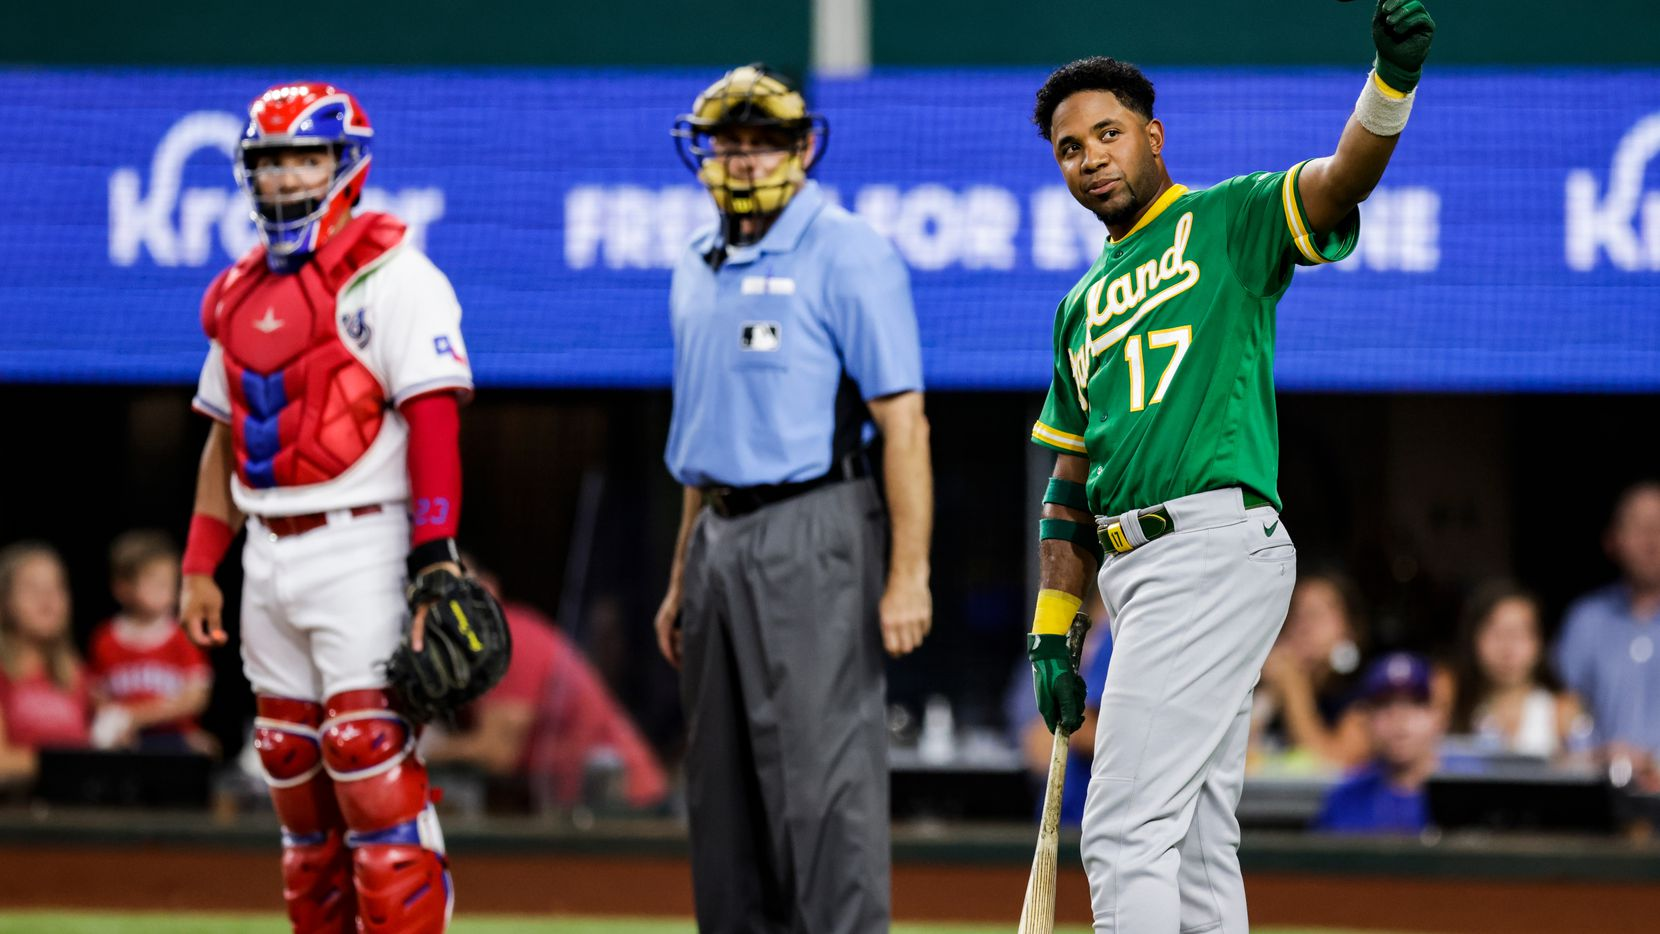 Oakland Athletics' Elvis Andrus (17) acknowledges the fans before his first at bat during the second inning of a baseball game against the Texas Rangers in Arlington, Monday, June 21, 2021.